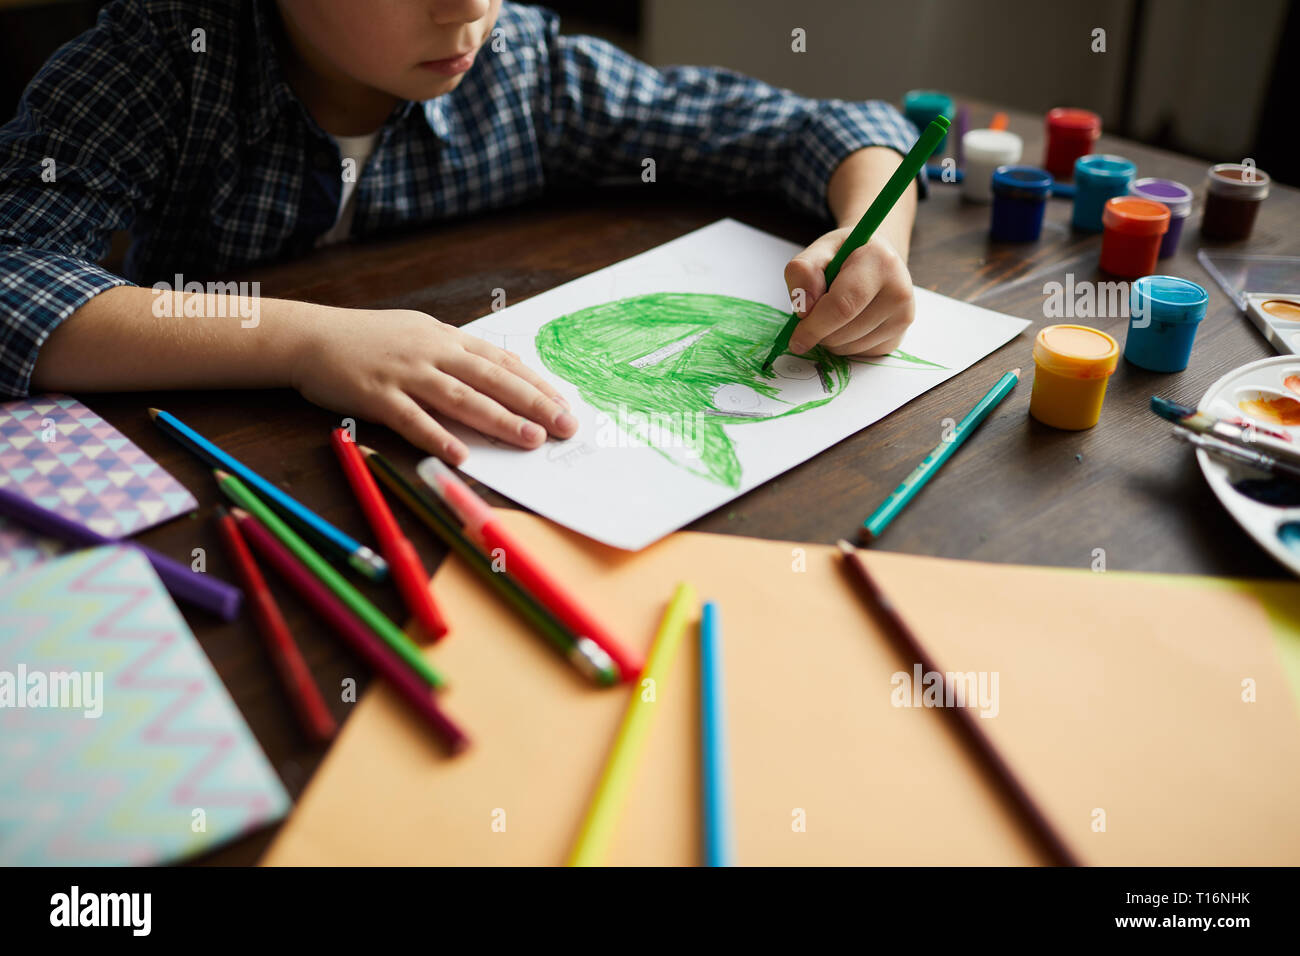 Boy Drawing Monster - Stock Image